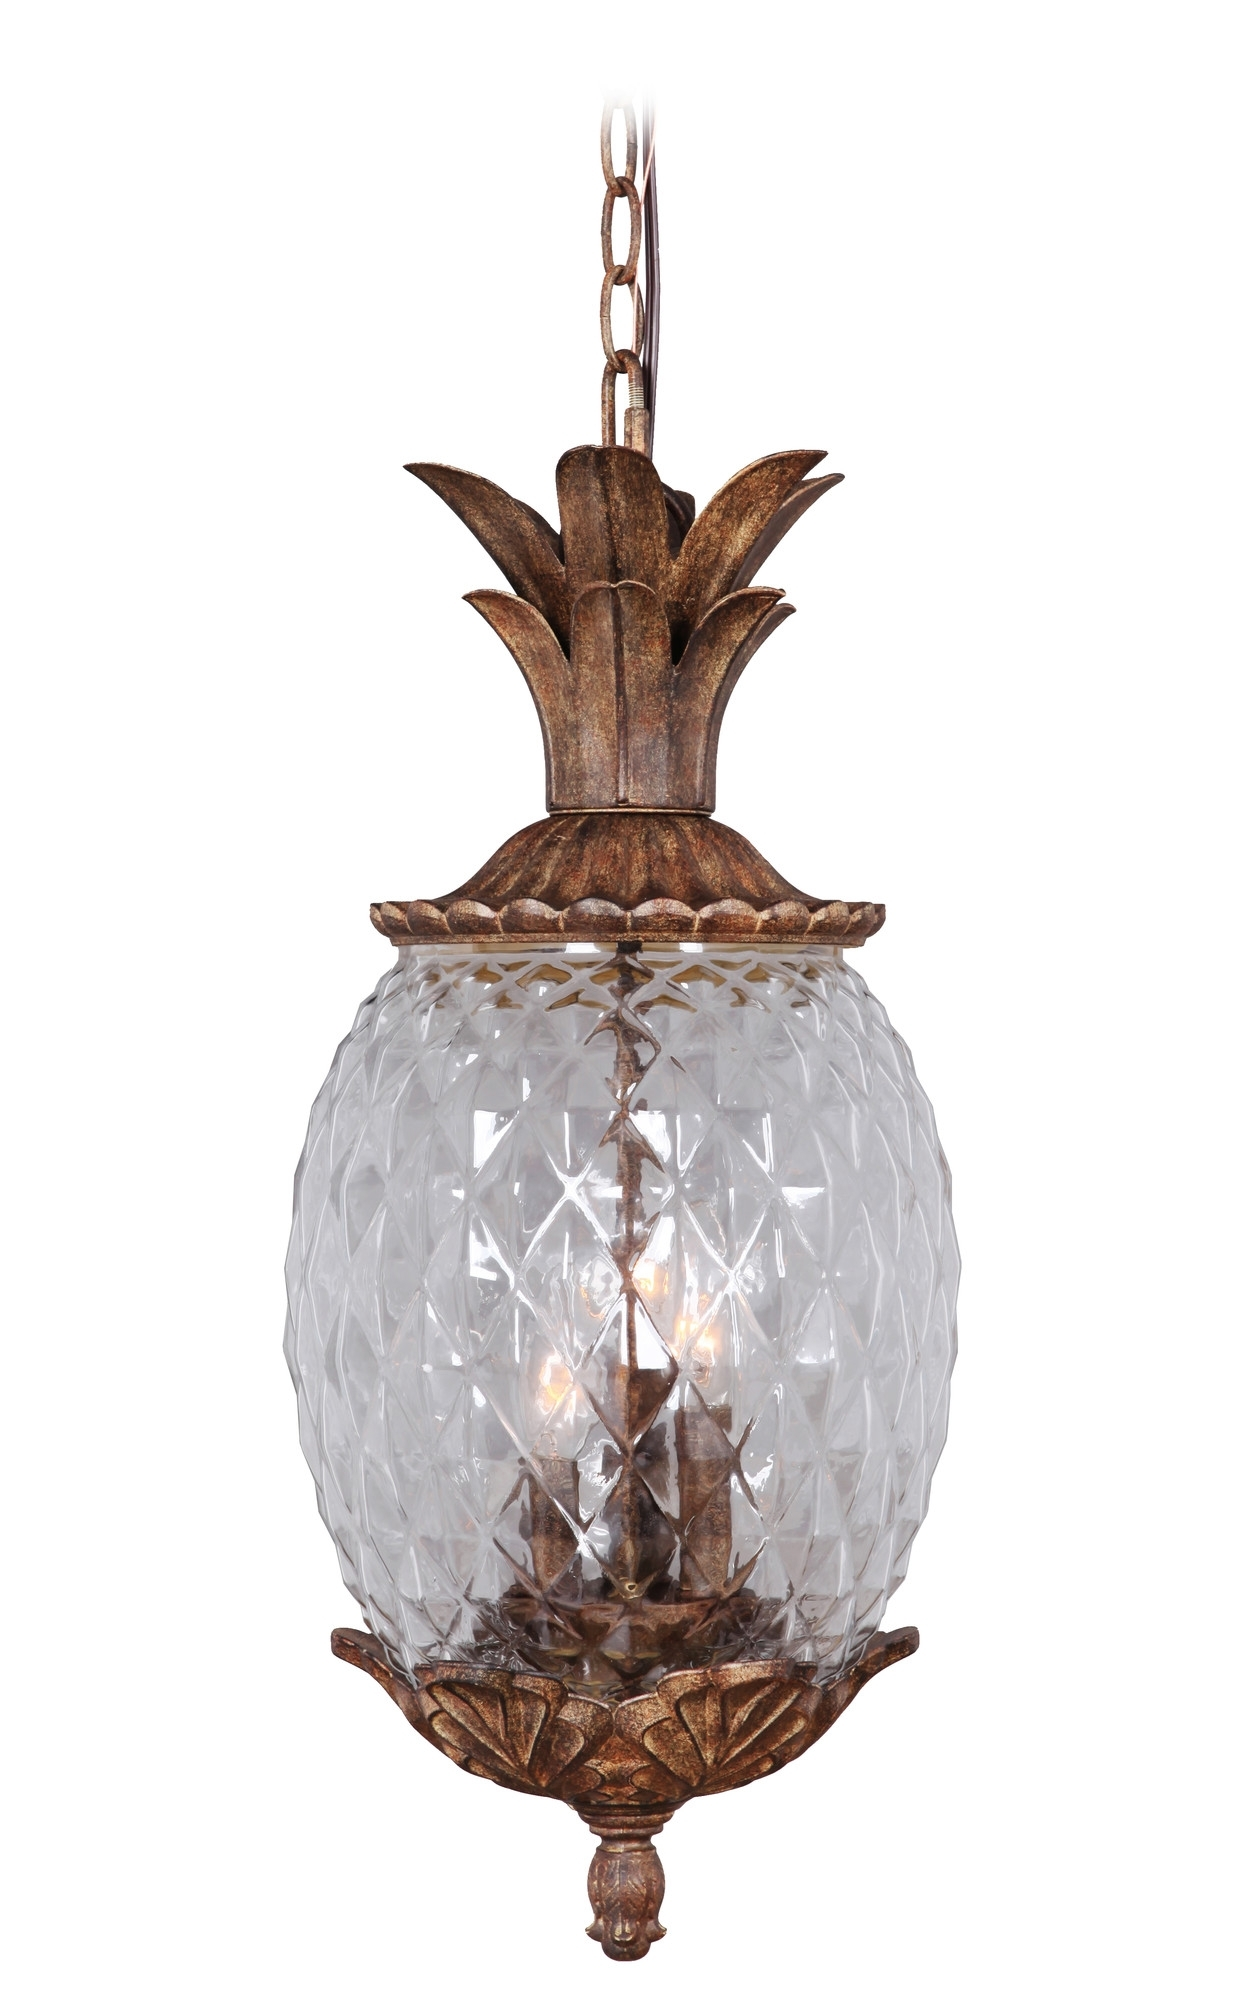 Marianahome Pineapple 3 Light Pendant & Reviews | Wayfair | Lighting For Wayfair Outdoor Hanging Lighting Fixtures (View 5 of 15)